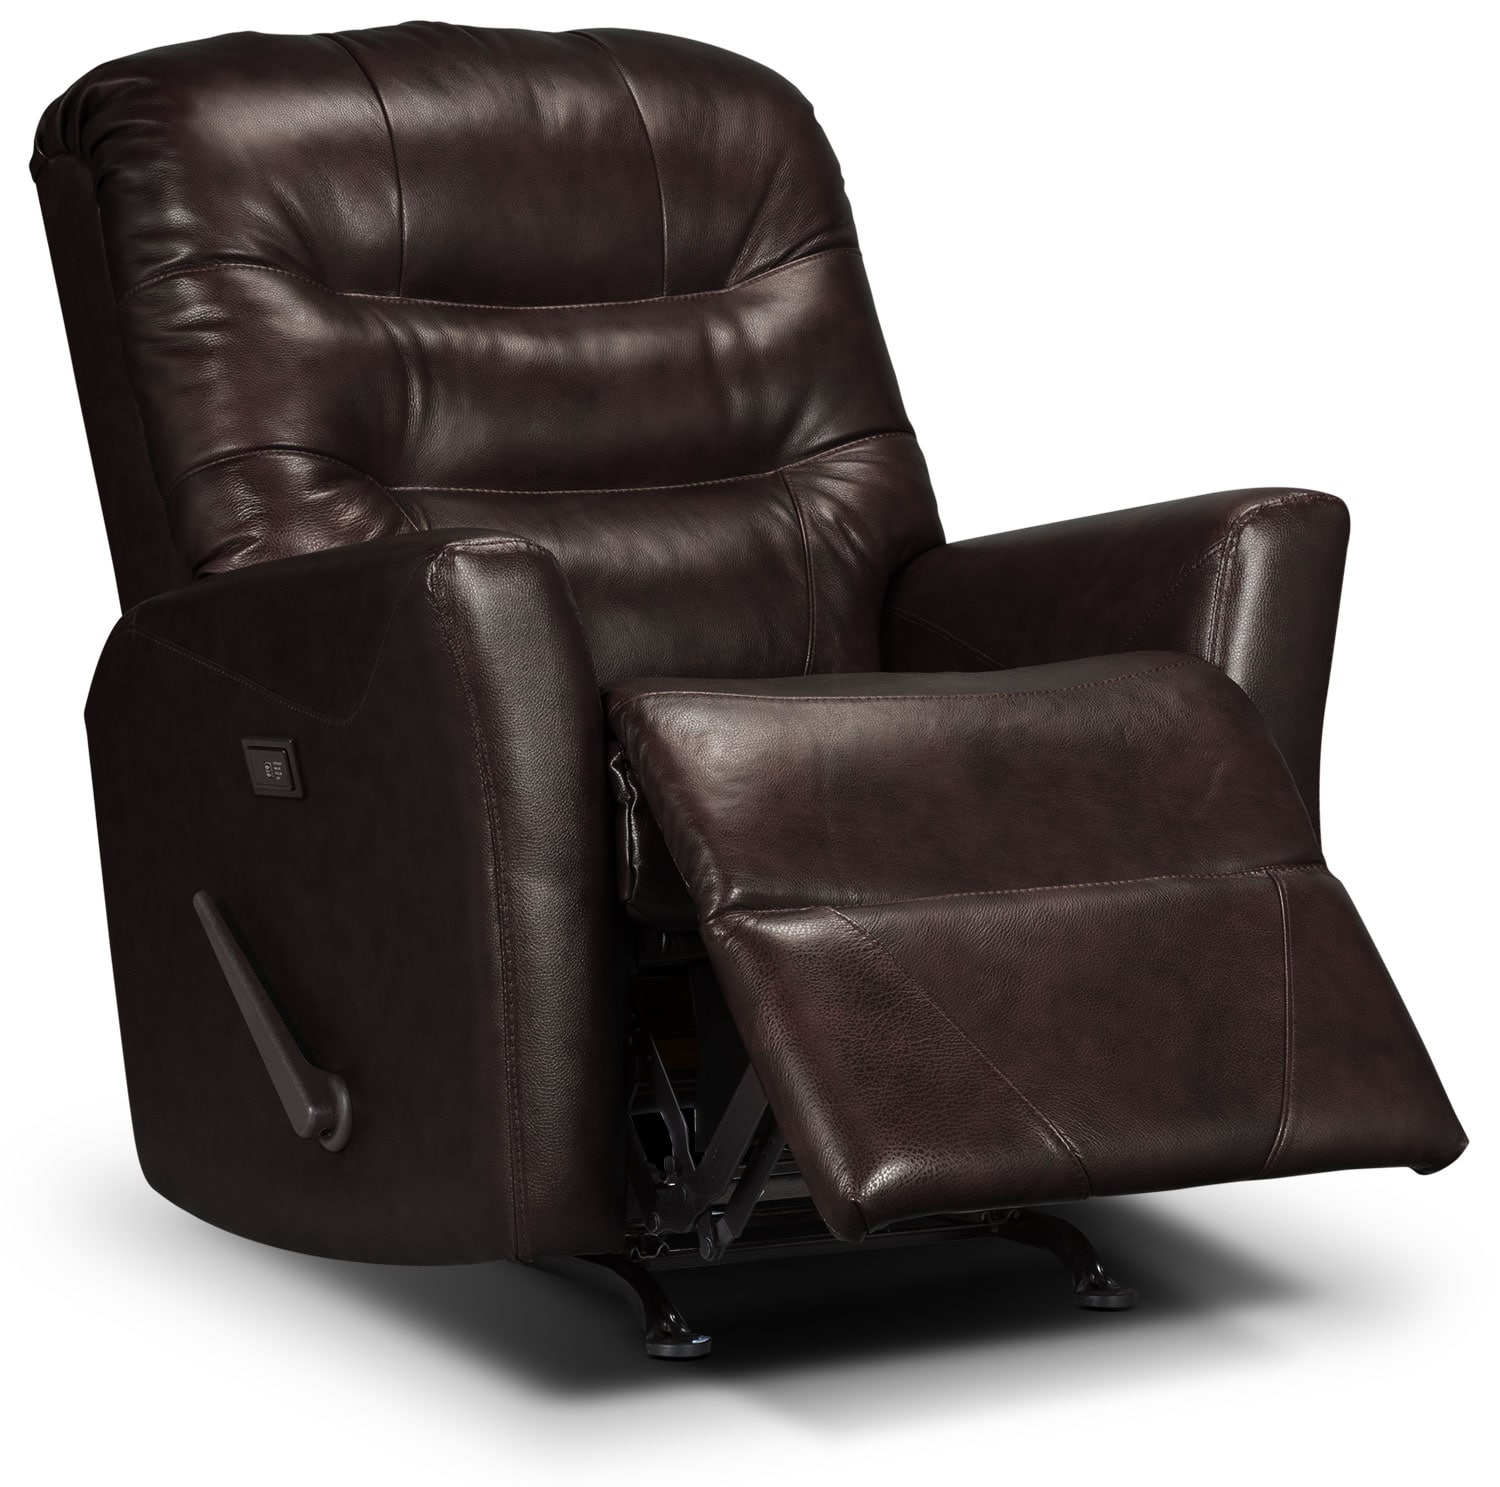 Designed2B Recliner 4560 Bonded Leather Massage Recliner - Chocolate